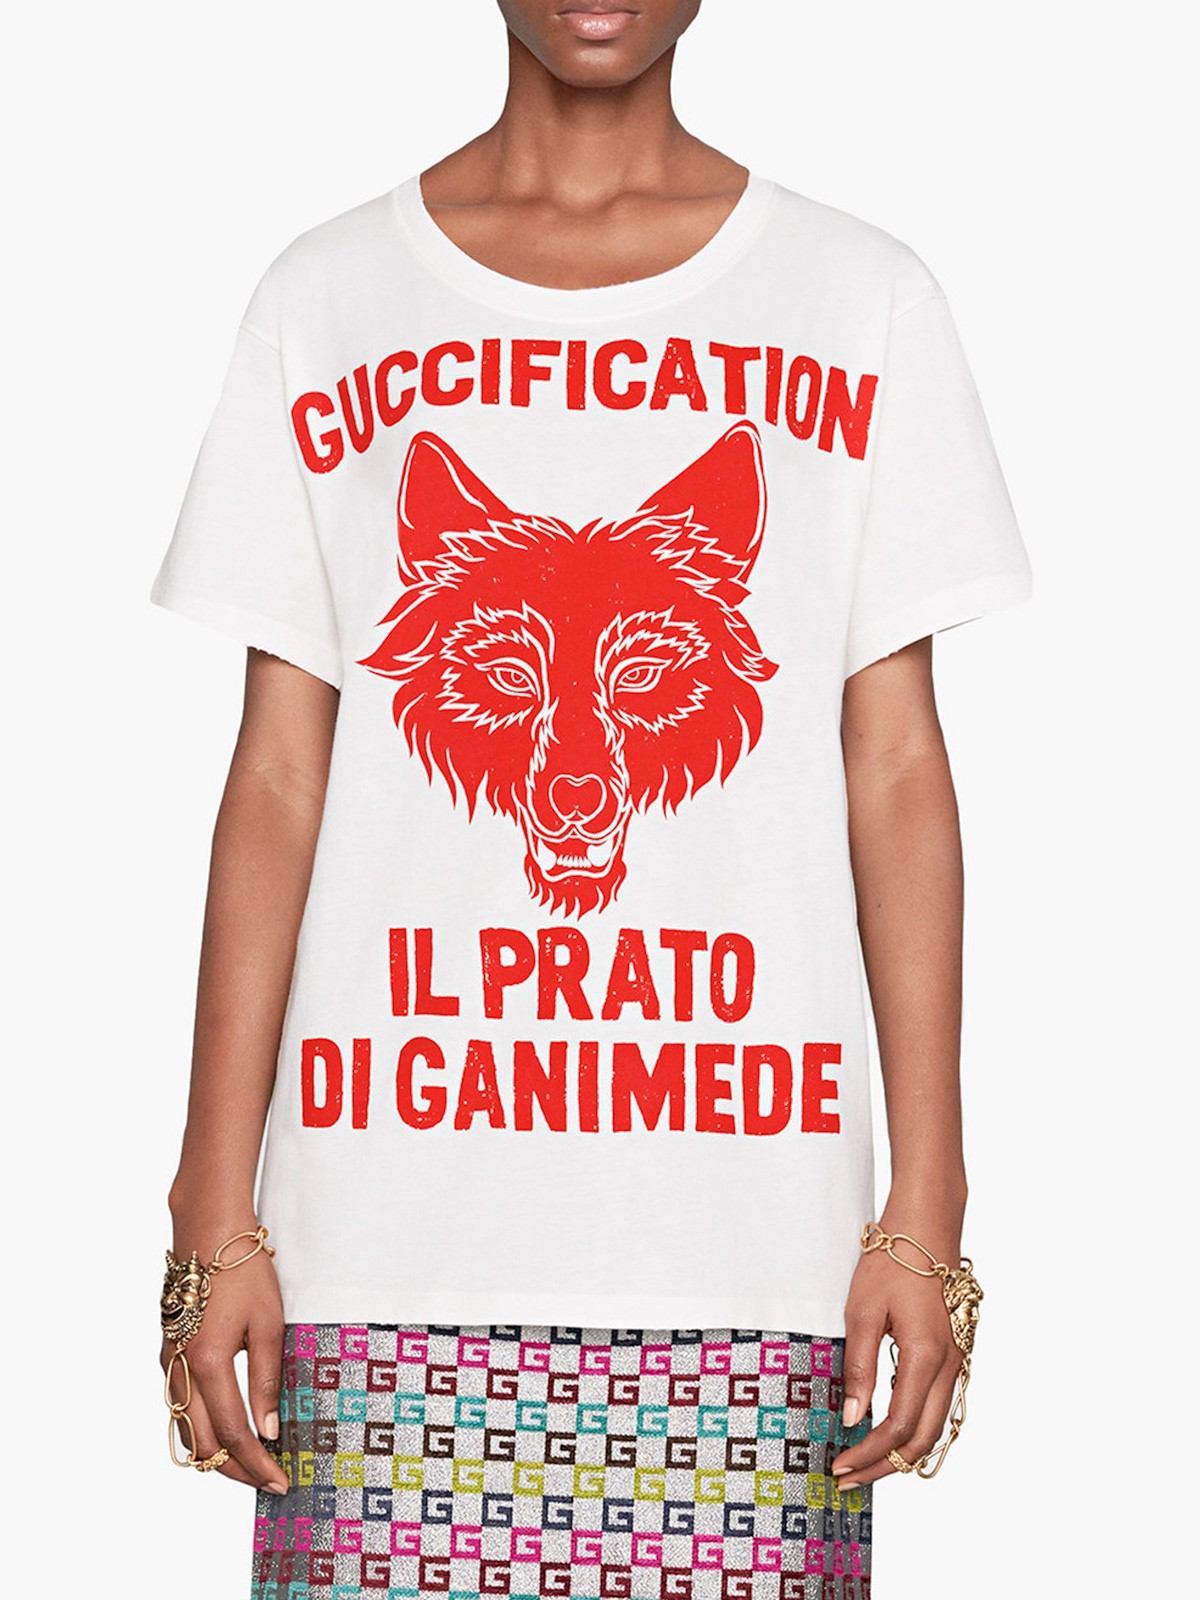 9307b491cfe gucci IL PRATO DI GANIMEDE GUCCIFICATION PRINT T-SHIRT available on ...